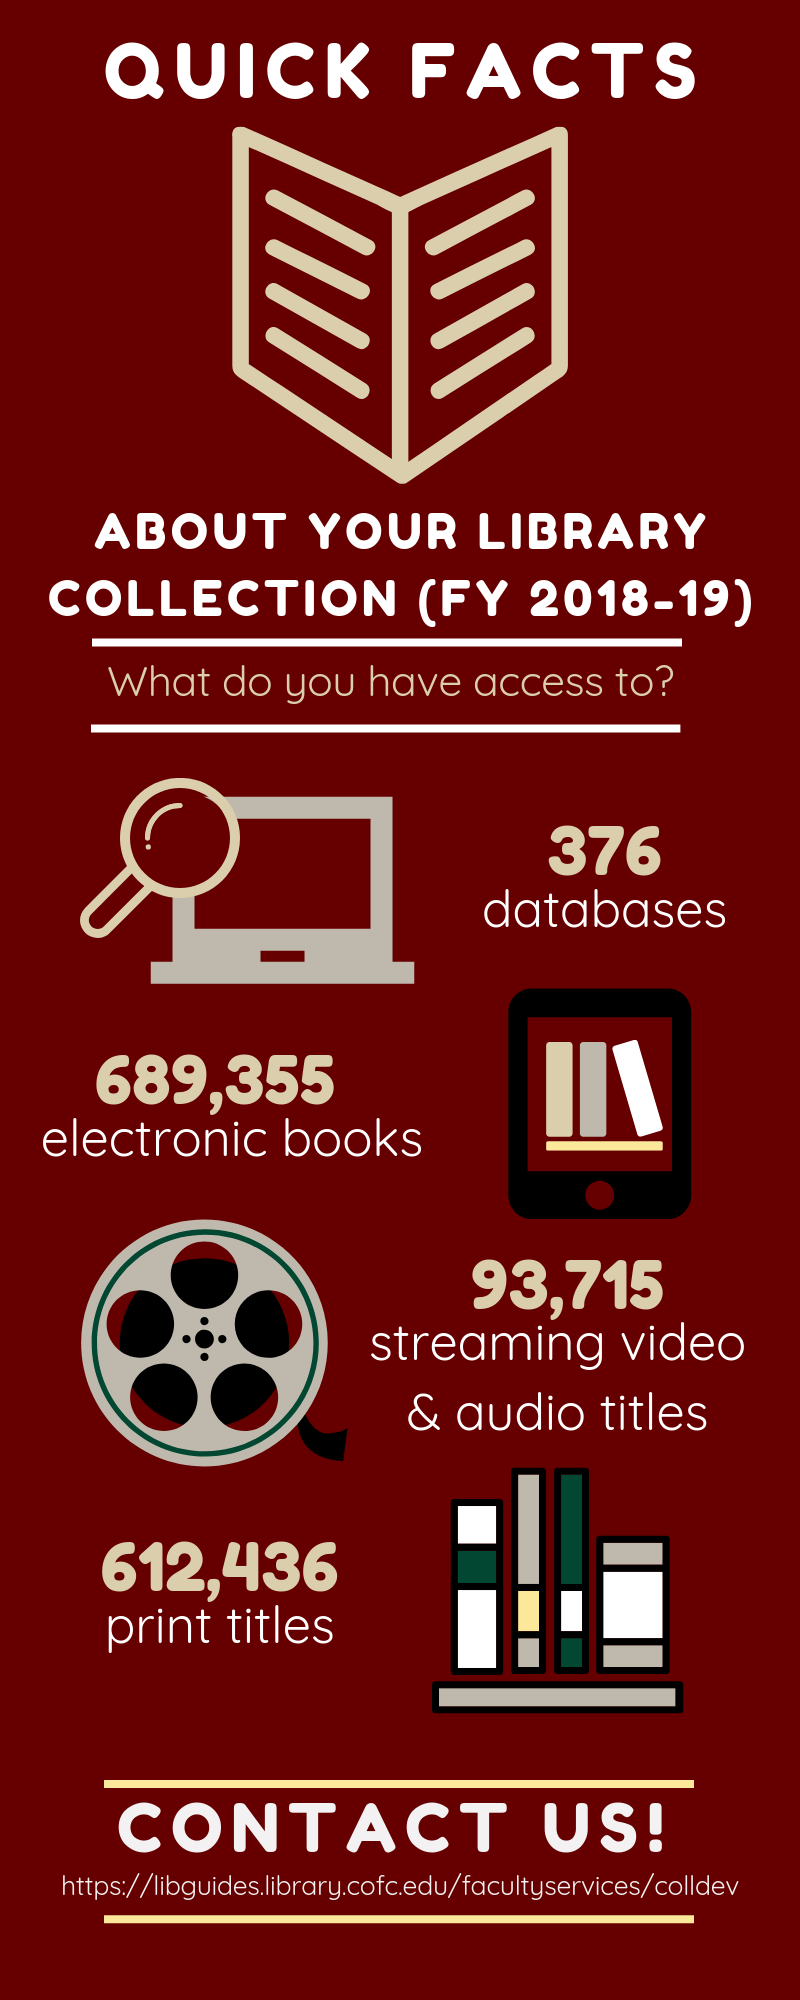 Quick facts about the College of Charleston's library collections.